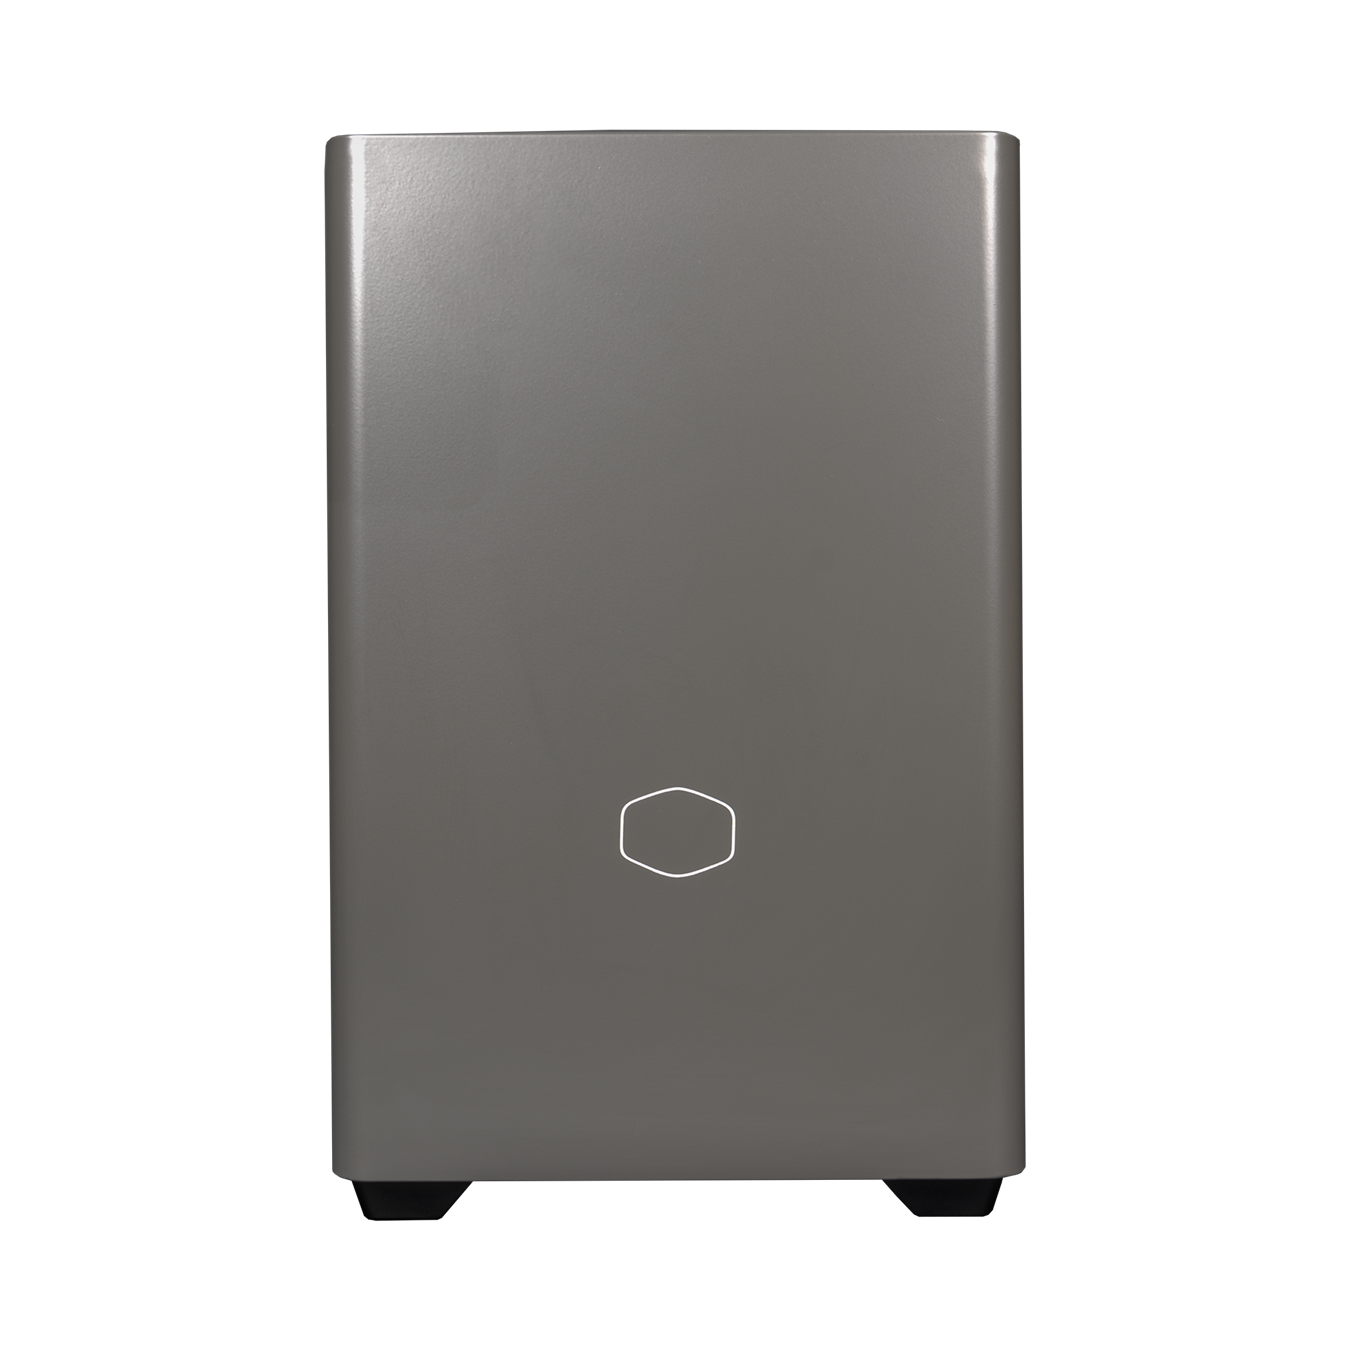 NR200P MAX satin grey front panel with small white Cooler Master logo.